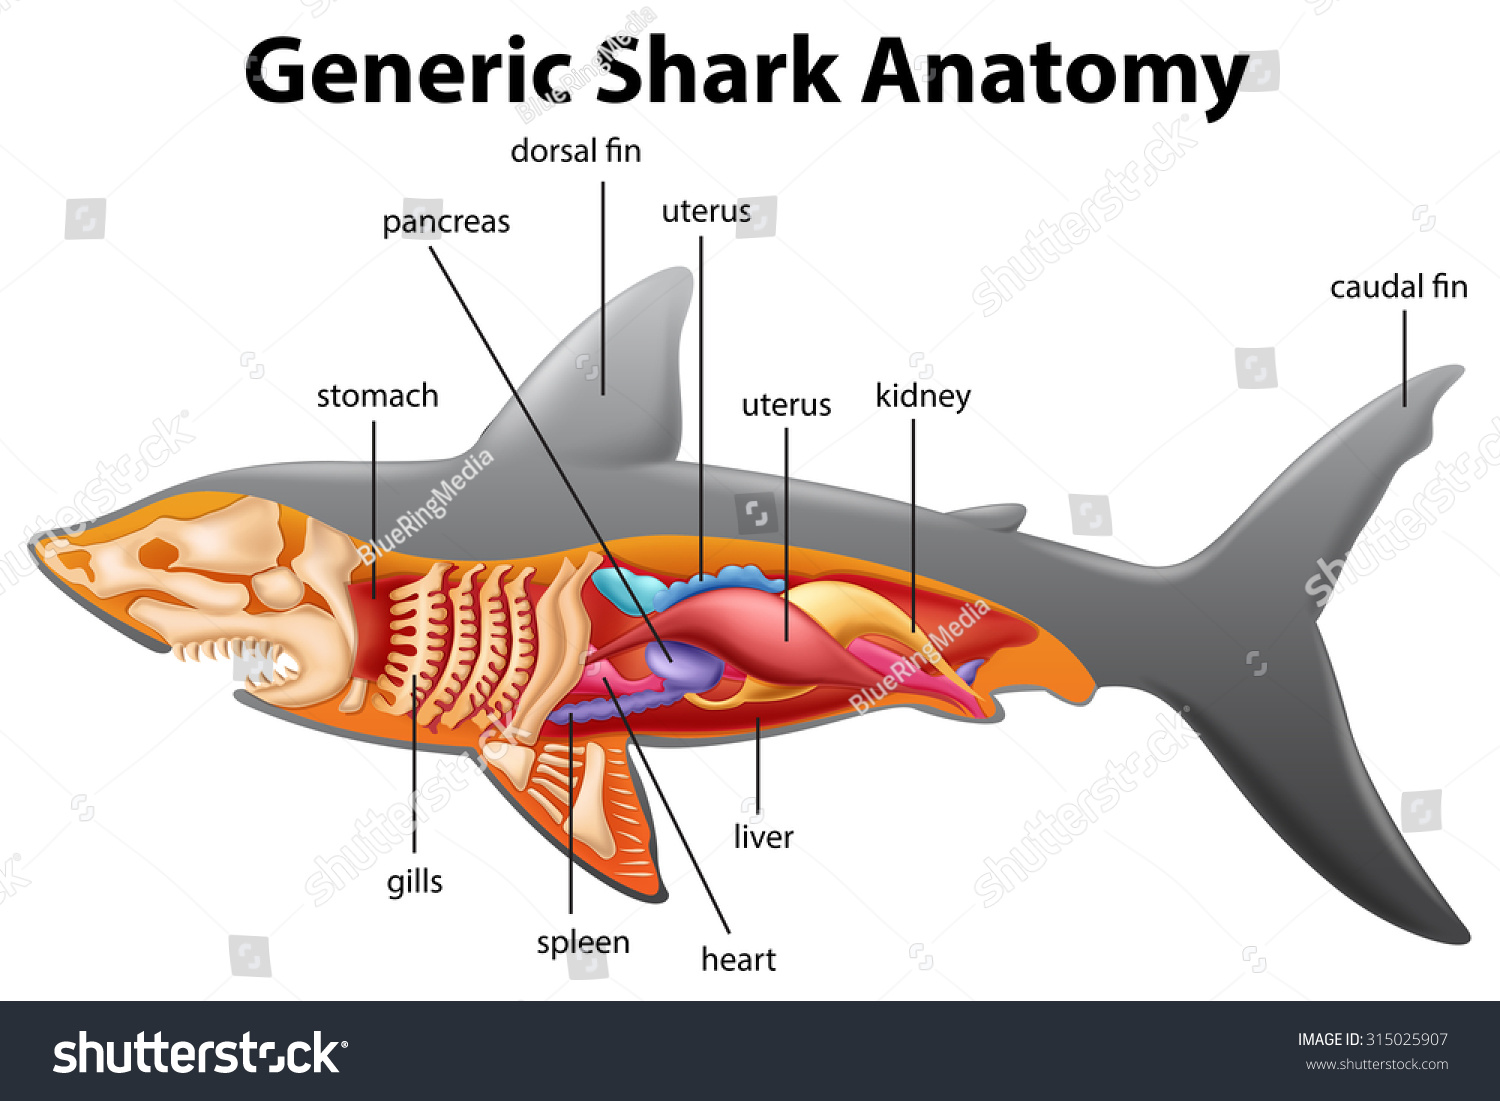 Generic Shark Anatomy Chart Illustration Stock Vector (Royalty Free ...